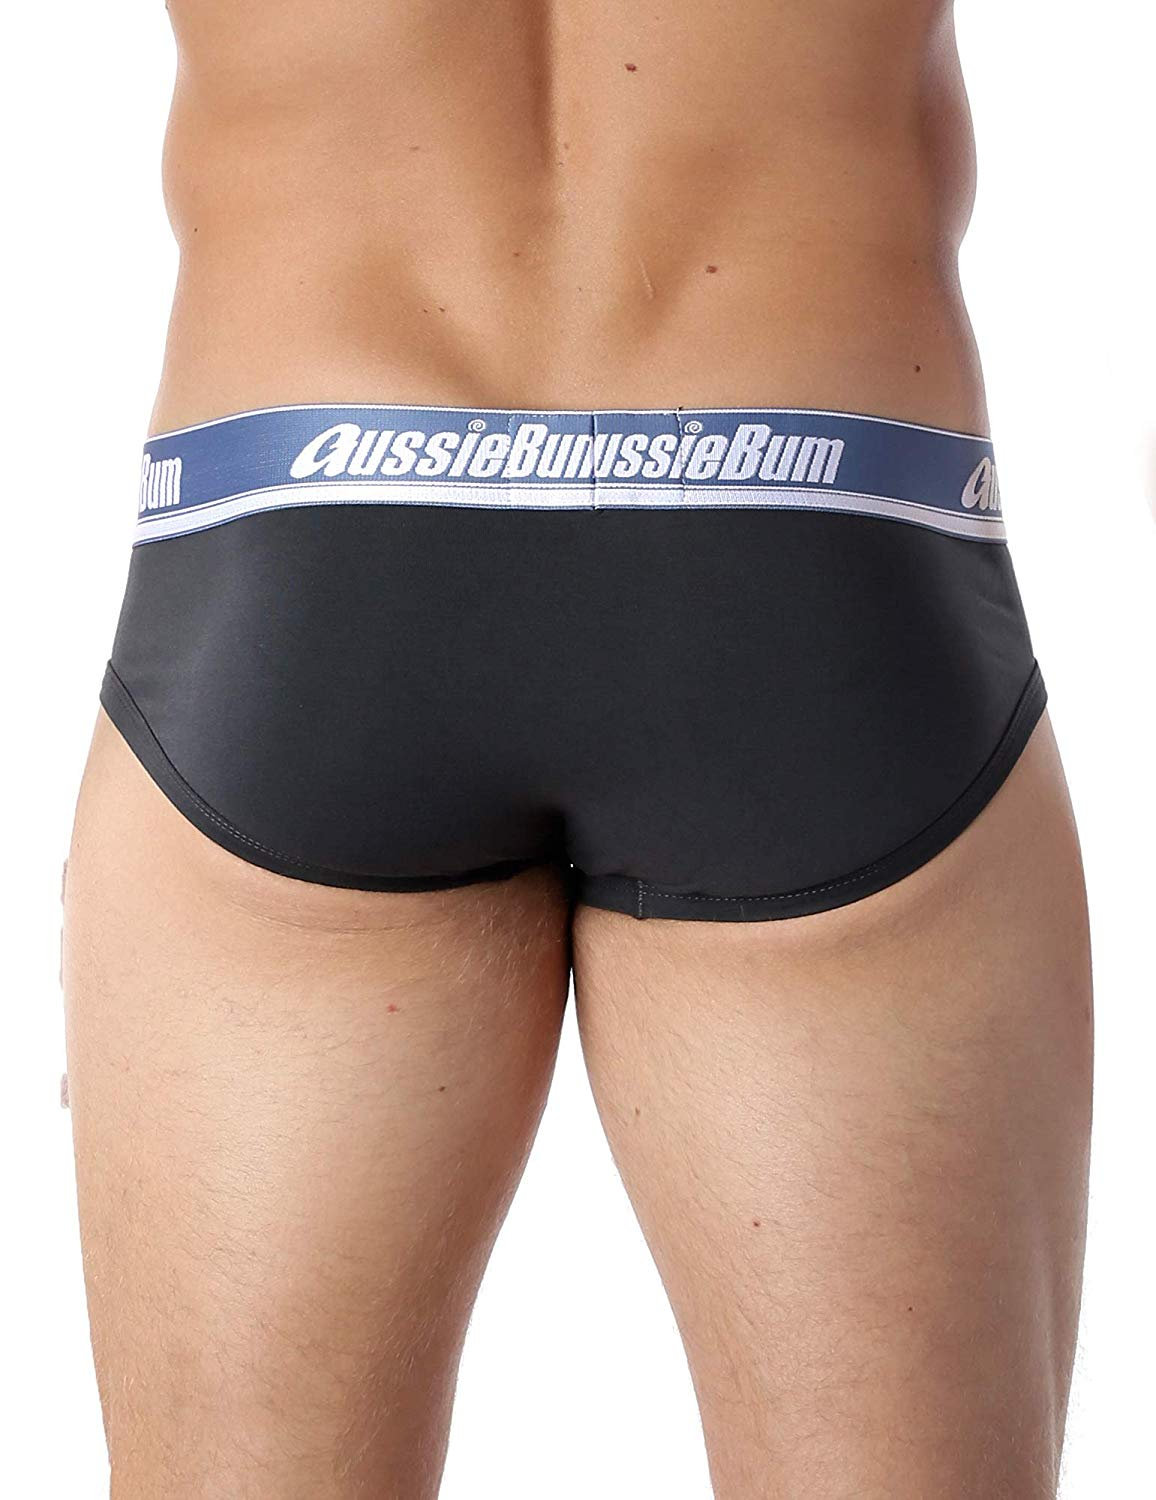 Slipy AussieBum Wonder Jock Pro s Push-up kapsou WJ Charcoal4